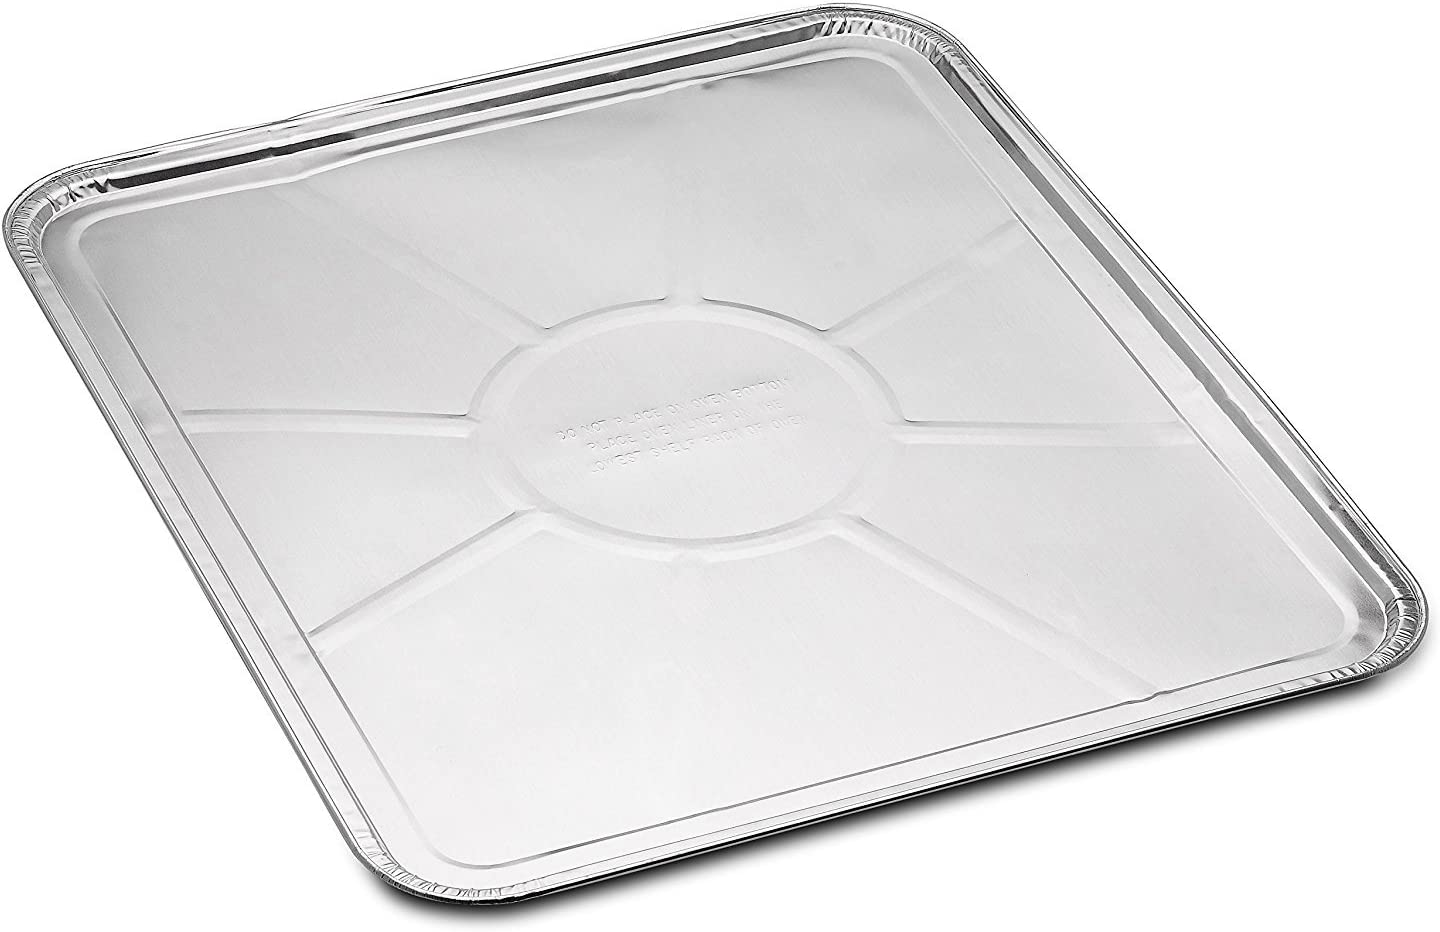 "10-Pack Disposable Foil Oven Liners by DCS Deals – Keep Your Oven Clean and Healthy – Perfect Silver Foil Drip Pan Tray for Cooking, Baking, Roasting, and Grilling- 18.5 x15.5"" inch"